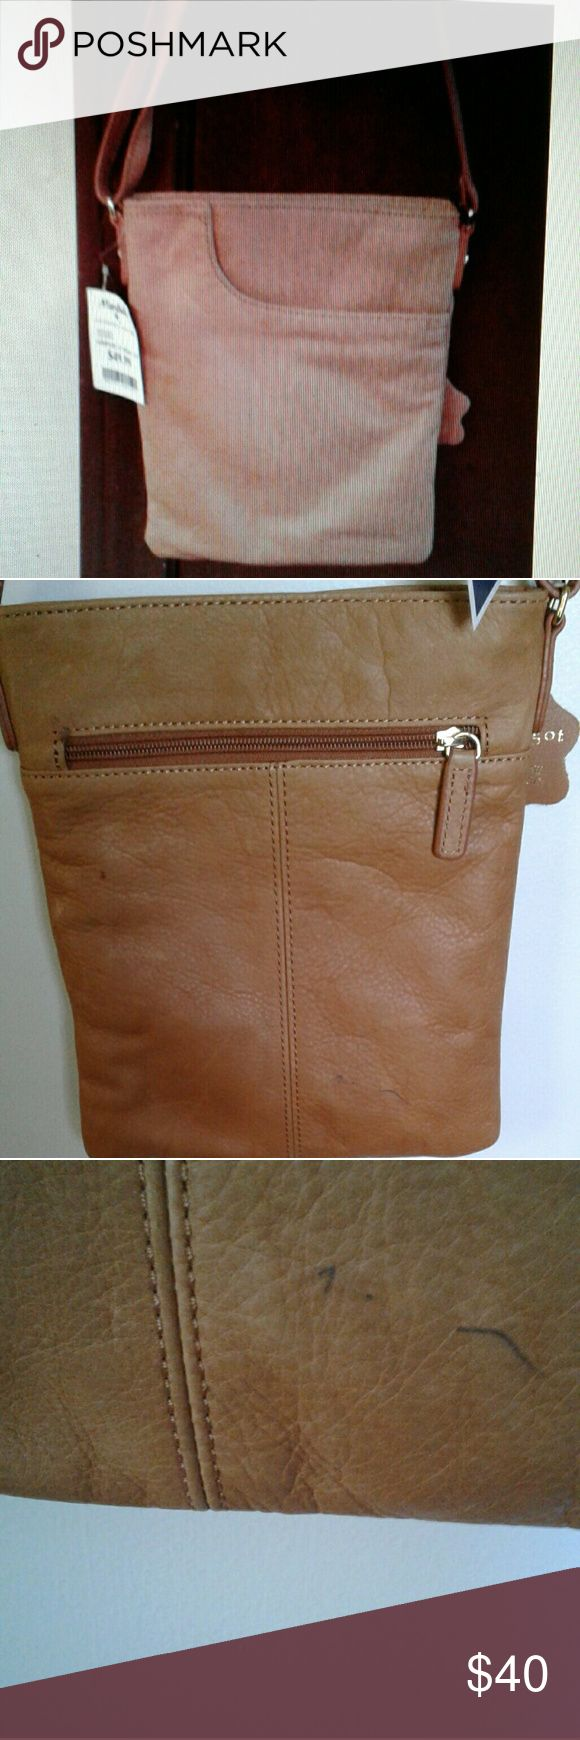 """Margot genuine leather purse SALE TODAY """"SPECIAL TODAY ONLY"""" $30 reg $40 NWT, EXTREMELY SOFT MARGOT GENUINE LEATHER BAG, brand new, never used, 81/2 """"width, 10"""" length, has a back zipper, a front pocket, 2 inside pockets, and inside zipper, nice deep golden color please note: small ink mark margot Bags"""